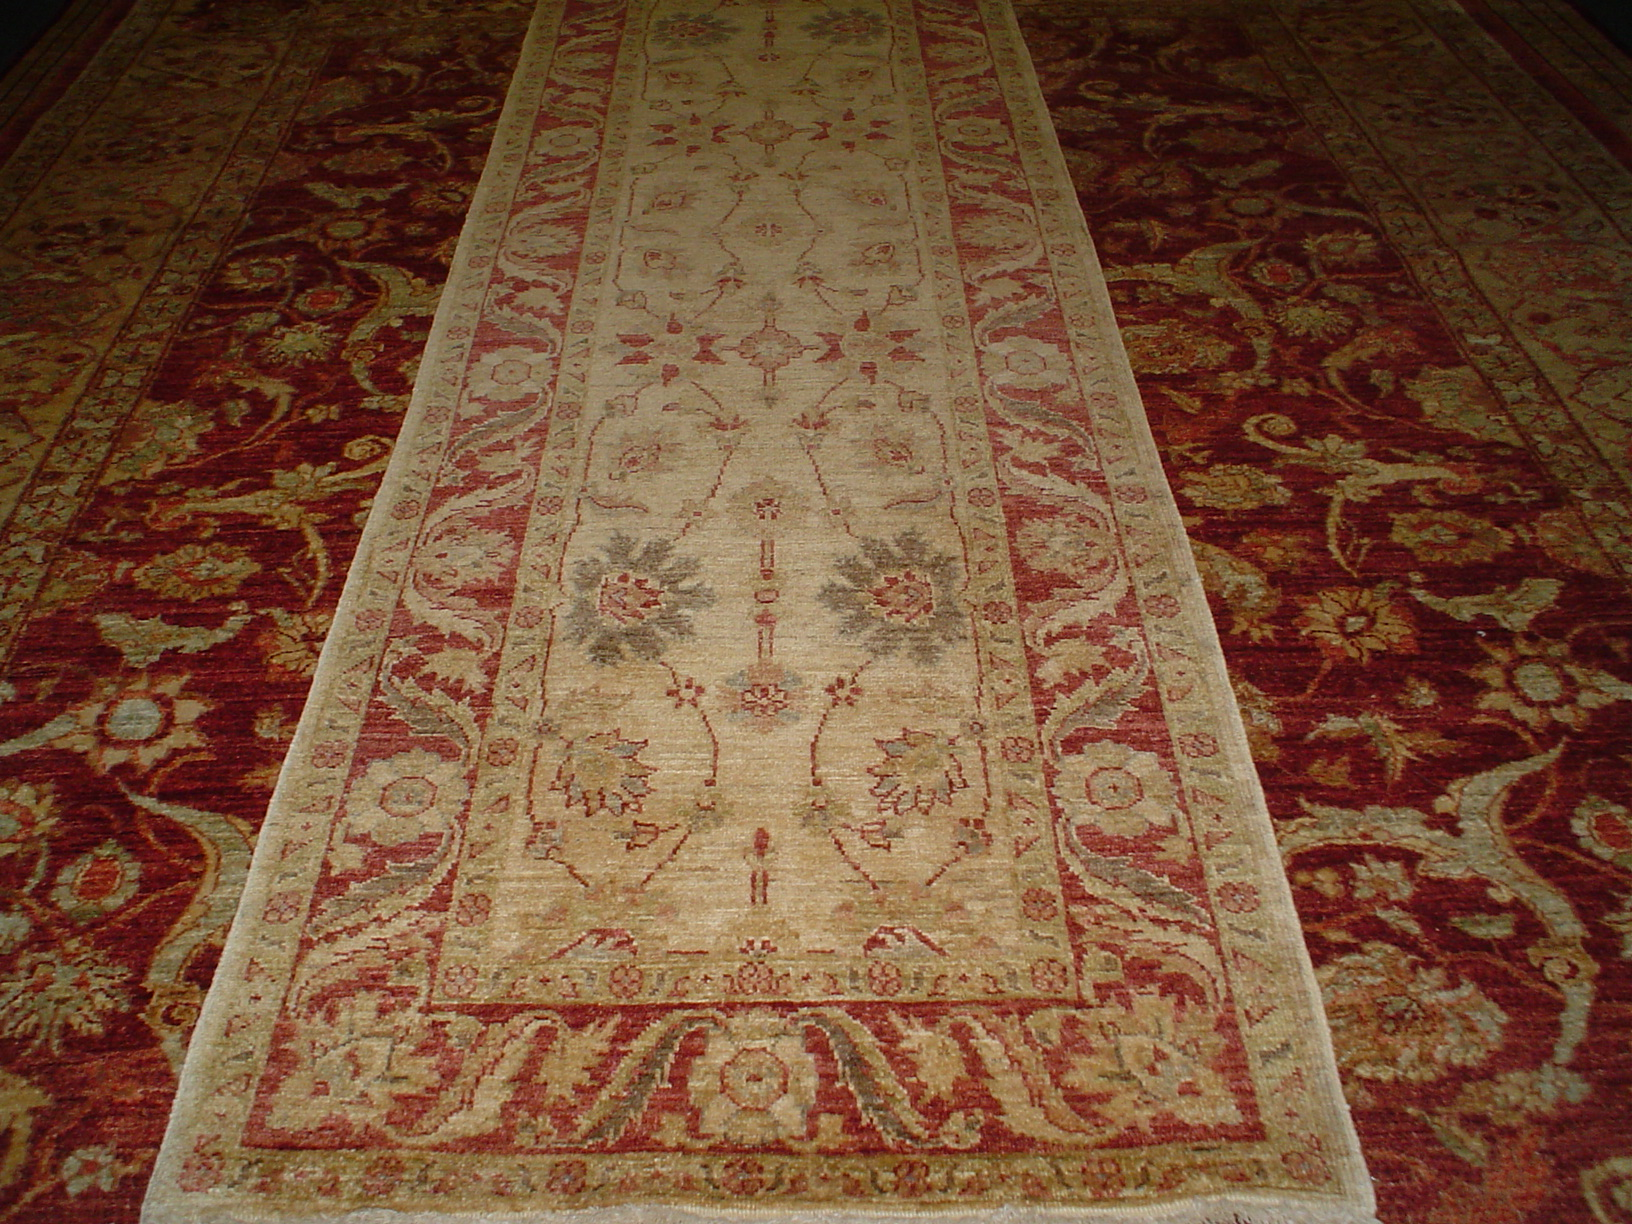 #3) 9 ft. Afghan runner in soft tones.